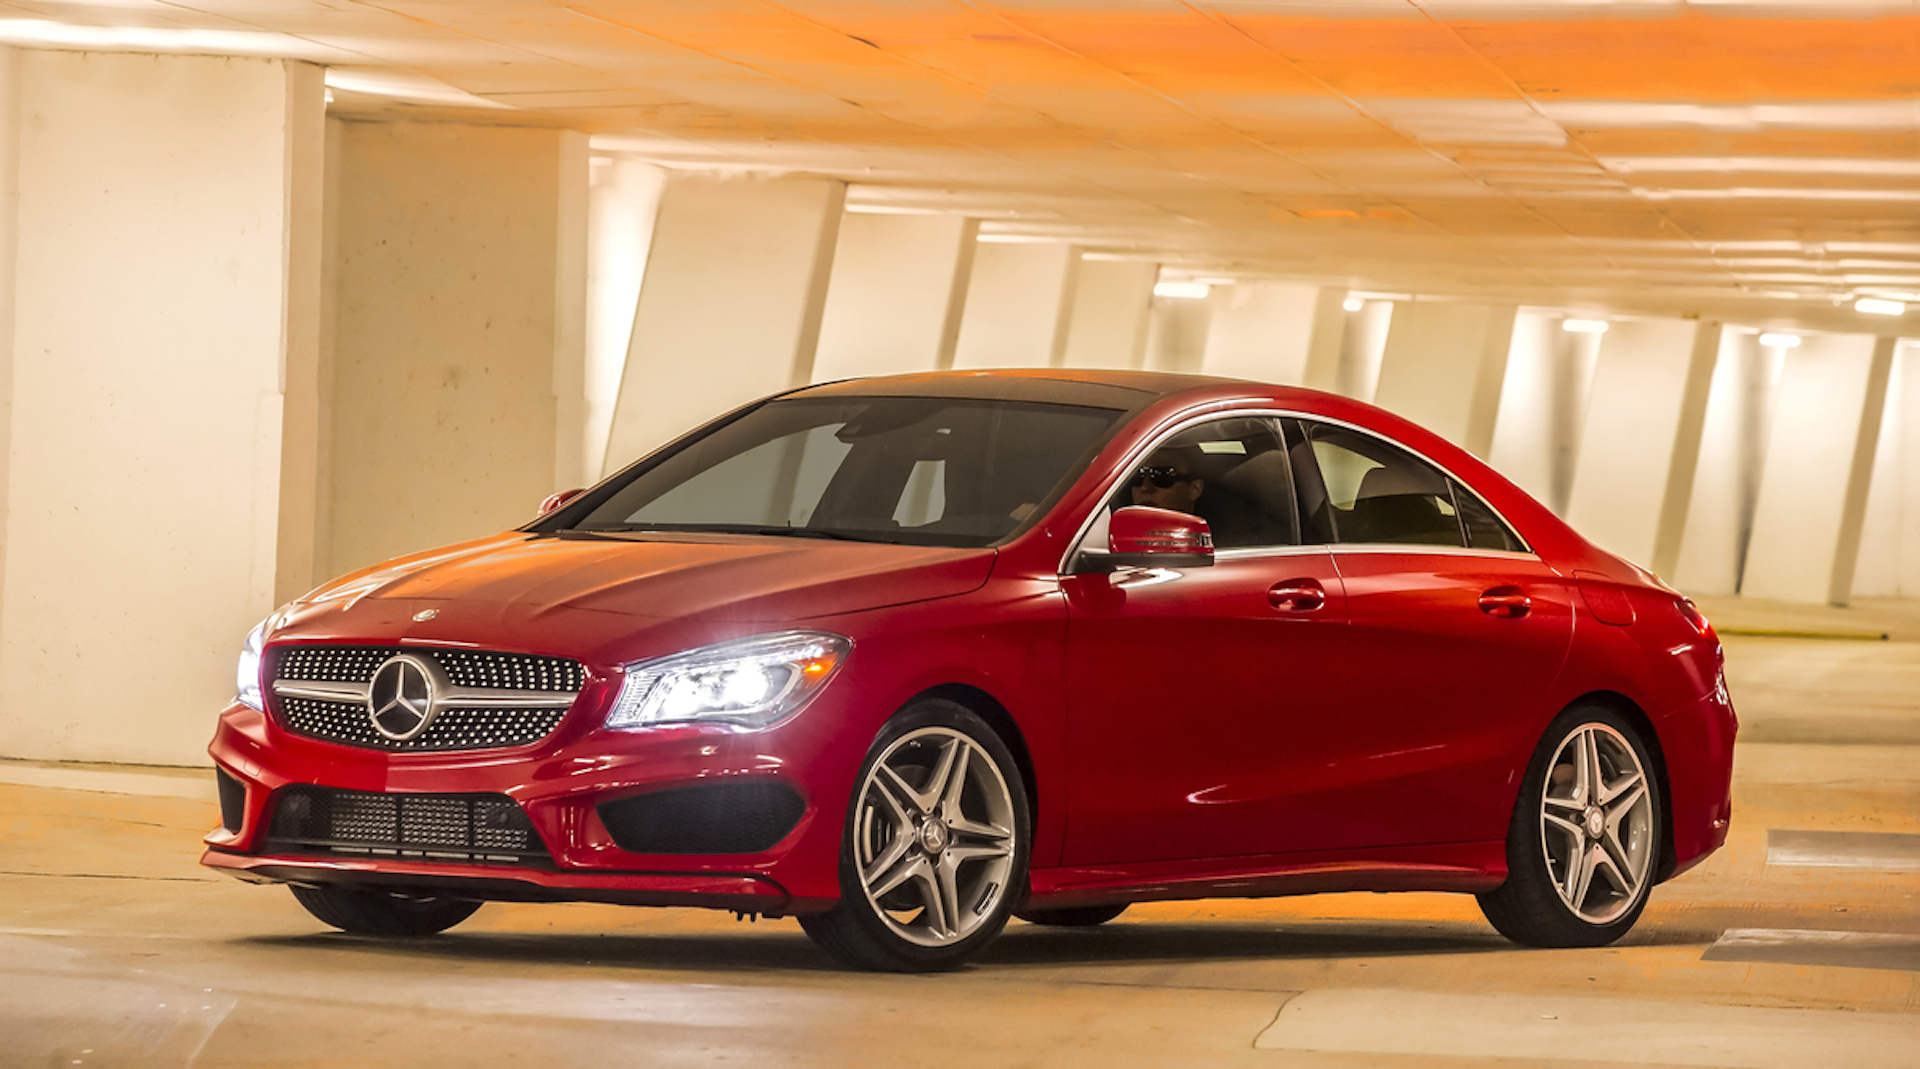 Used Bmw In Los Angeles 2015 Mercedes-Benz CLA Class Review, Ratings, Specs, Prices, and ...